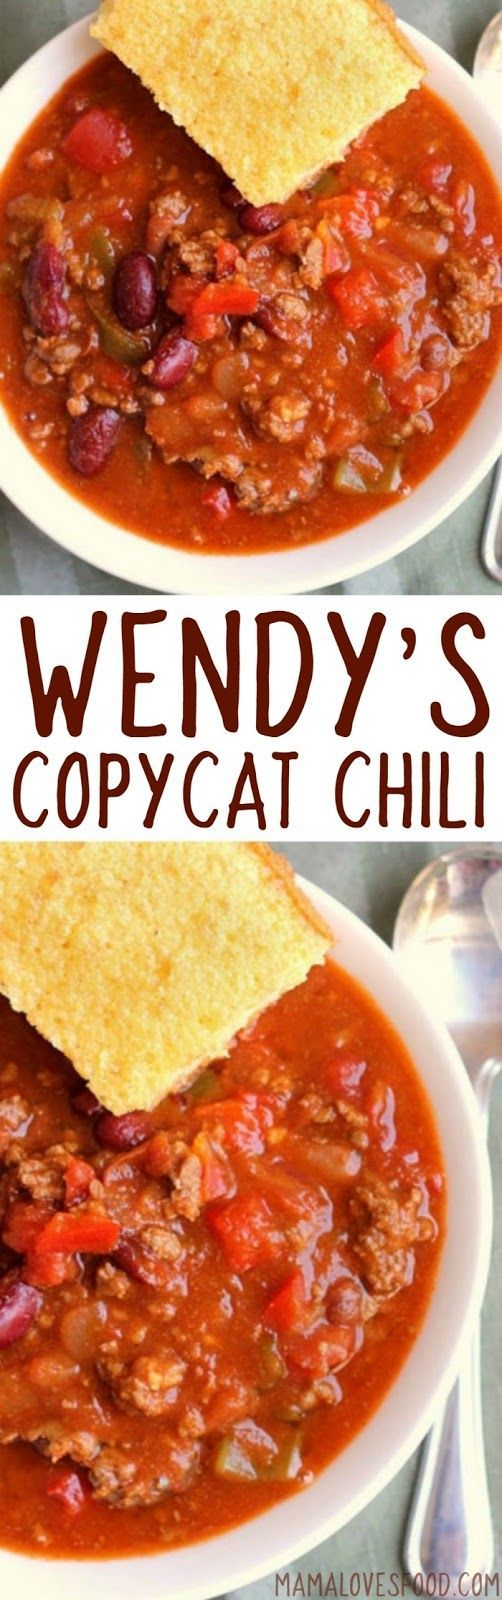 Tasted Just Like The Real Thing Wendy S Chili Copycat Recipe How To Make Wendy S Style Chili At Home Recipes Wendys Chili Recipe Mexican Food Recipes